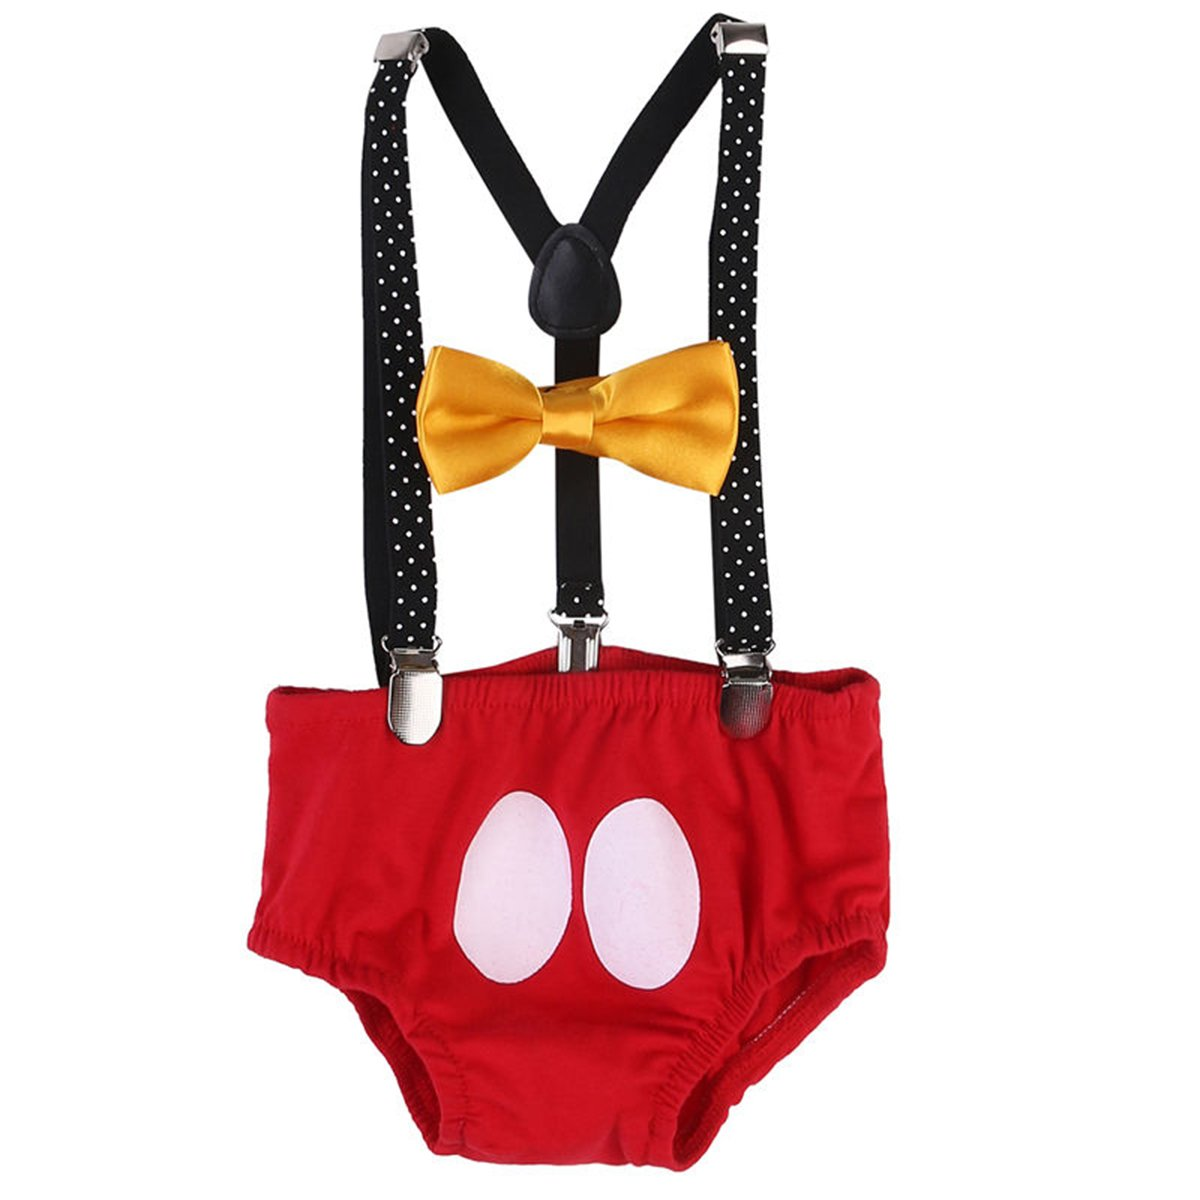 Baby Boys Adjustable Y Back Suspenders Bowtie Set Solid Elastic Strong Clips First Birthday Outfits